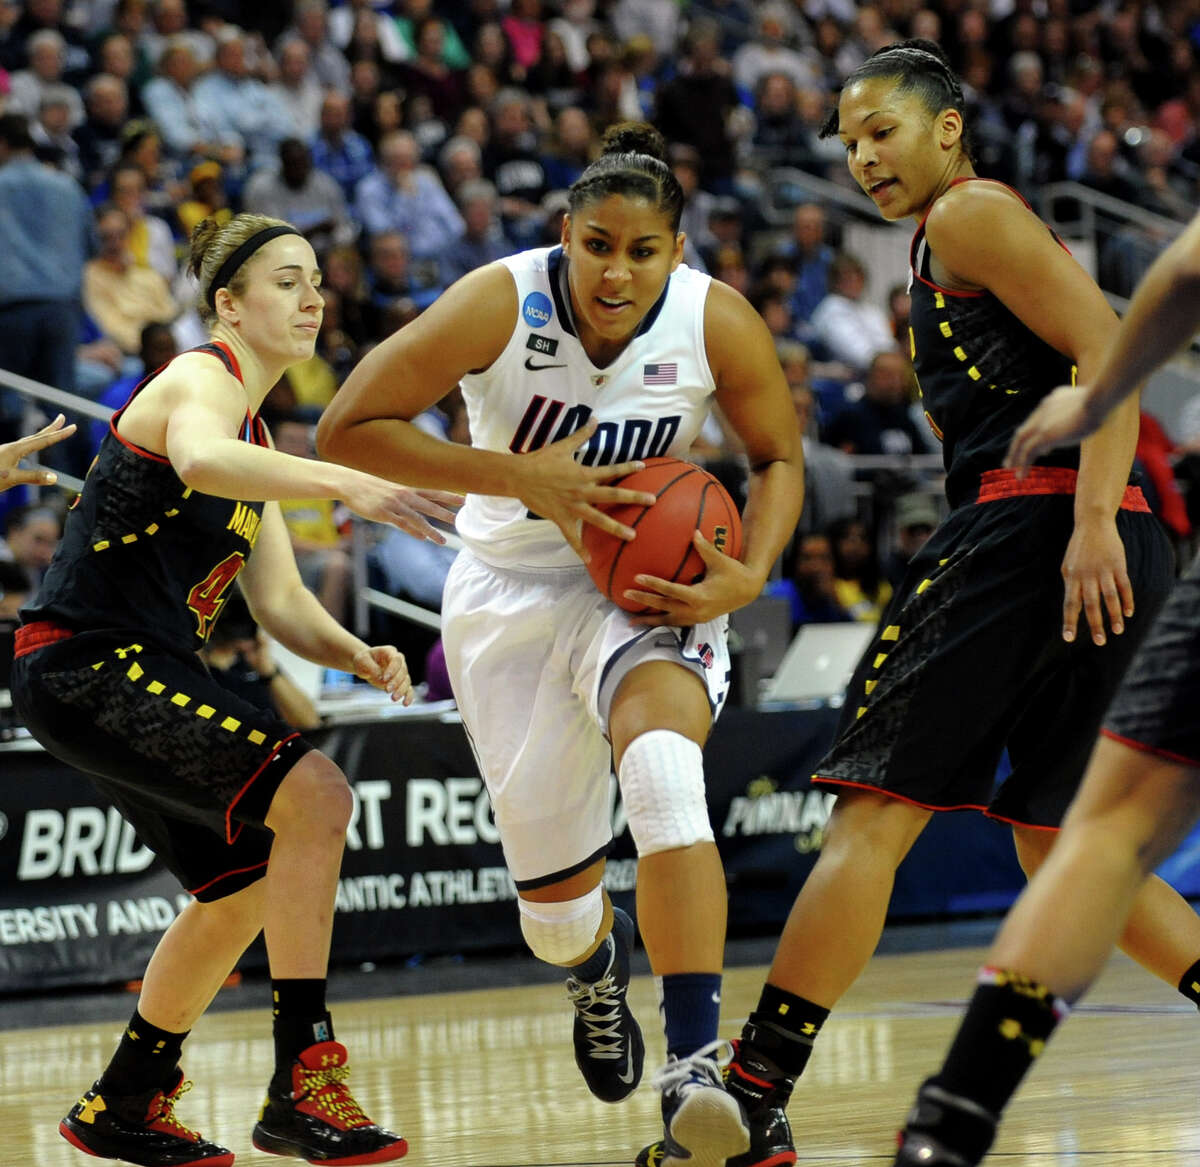 UConn's Kaleena Mosqueda-Lewis passes through two University of Maryland defenders, during the women's NCAA Tournament Regional Semifinals at the Webster Bank Arena in Bridgeport, Conn. on Saturday March 30, 2013.